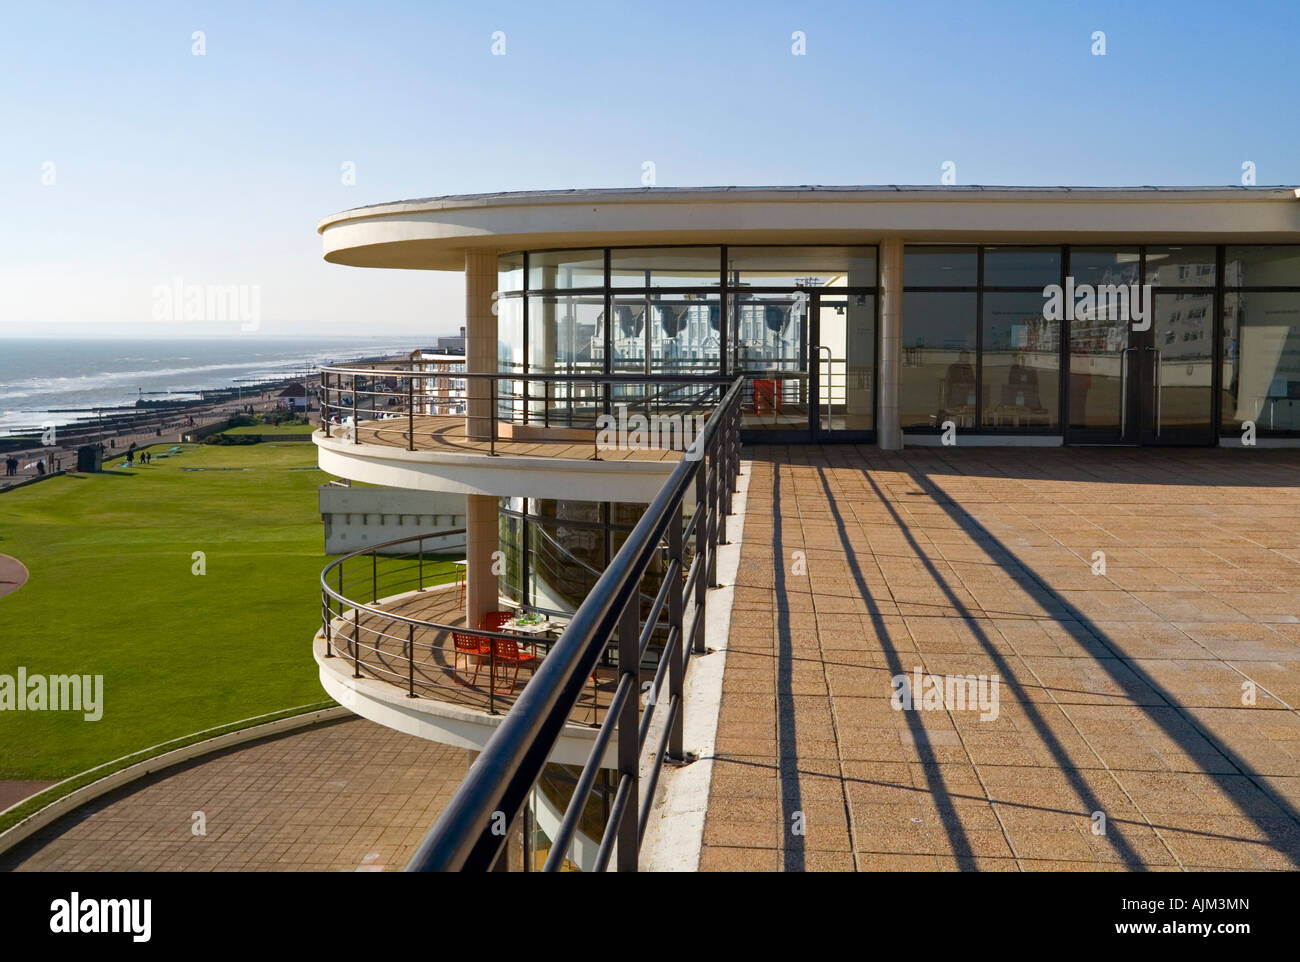 Exterior of the De La Warr Pavilion in Bexhill on Sea East Sussex UK designed by Erich Mendelsohn and Serge Chermayeff Stock Foto